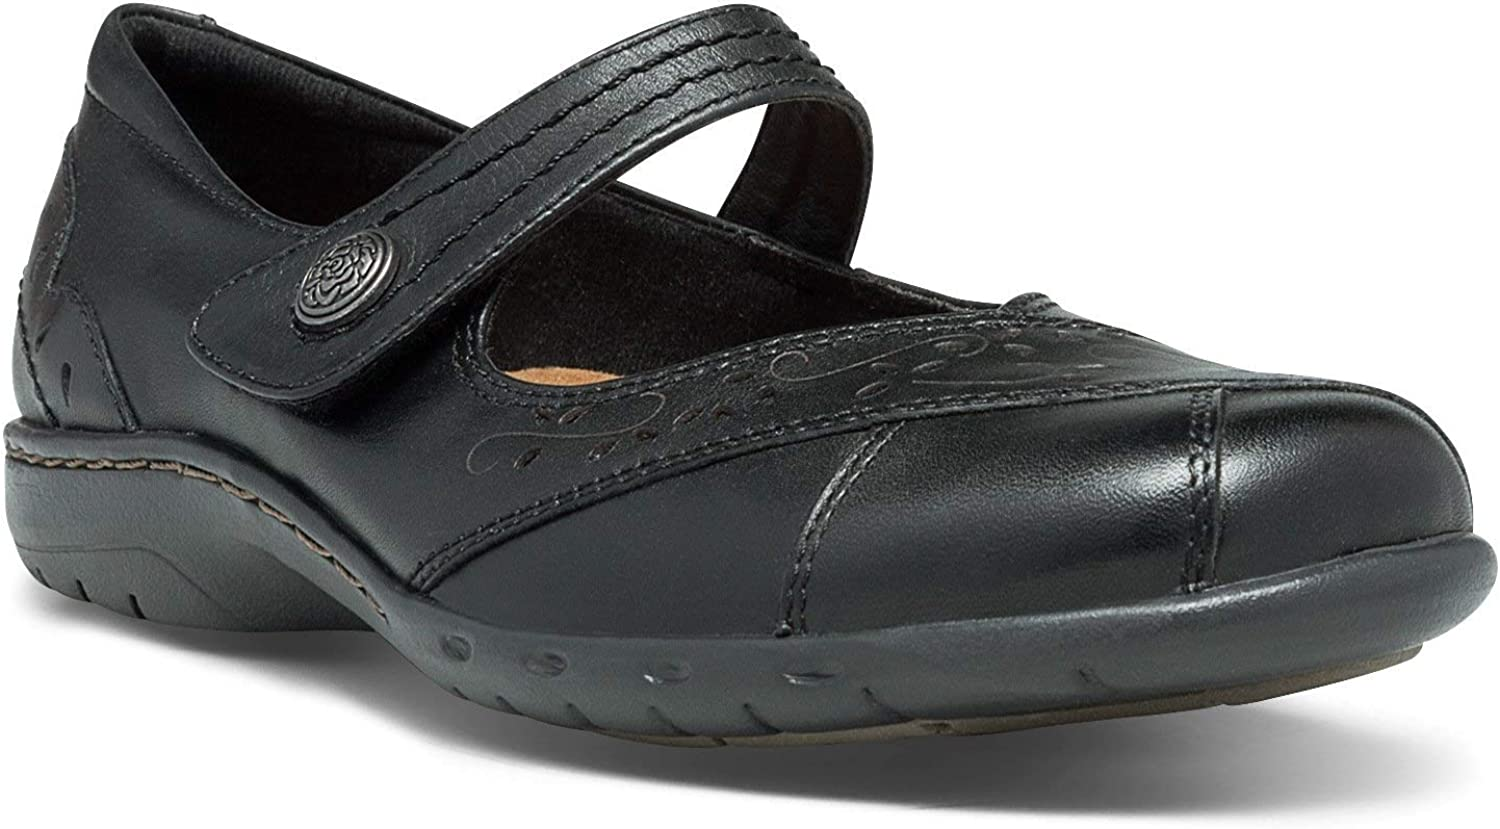 Rockport Women's Petra-Ch shoes, 5.5 B(M) US, Black